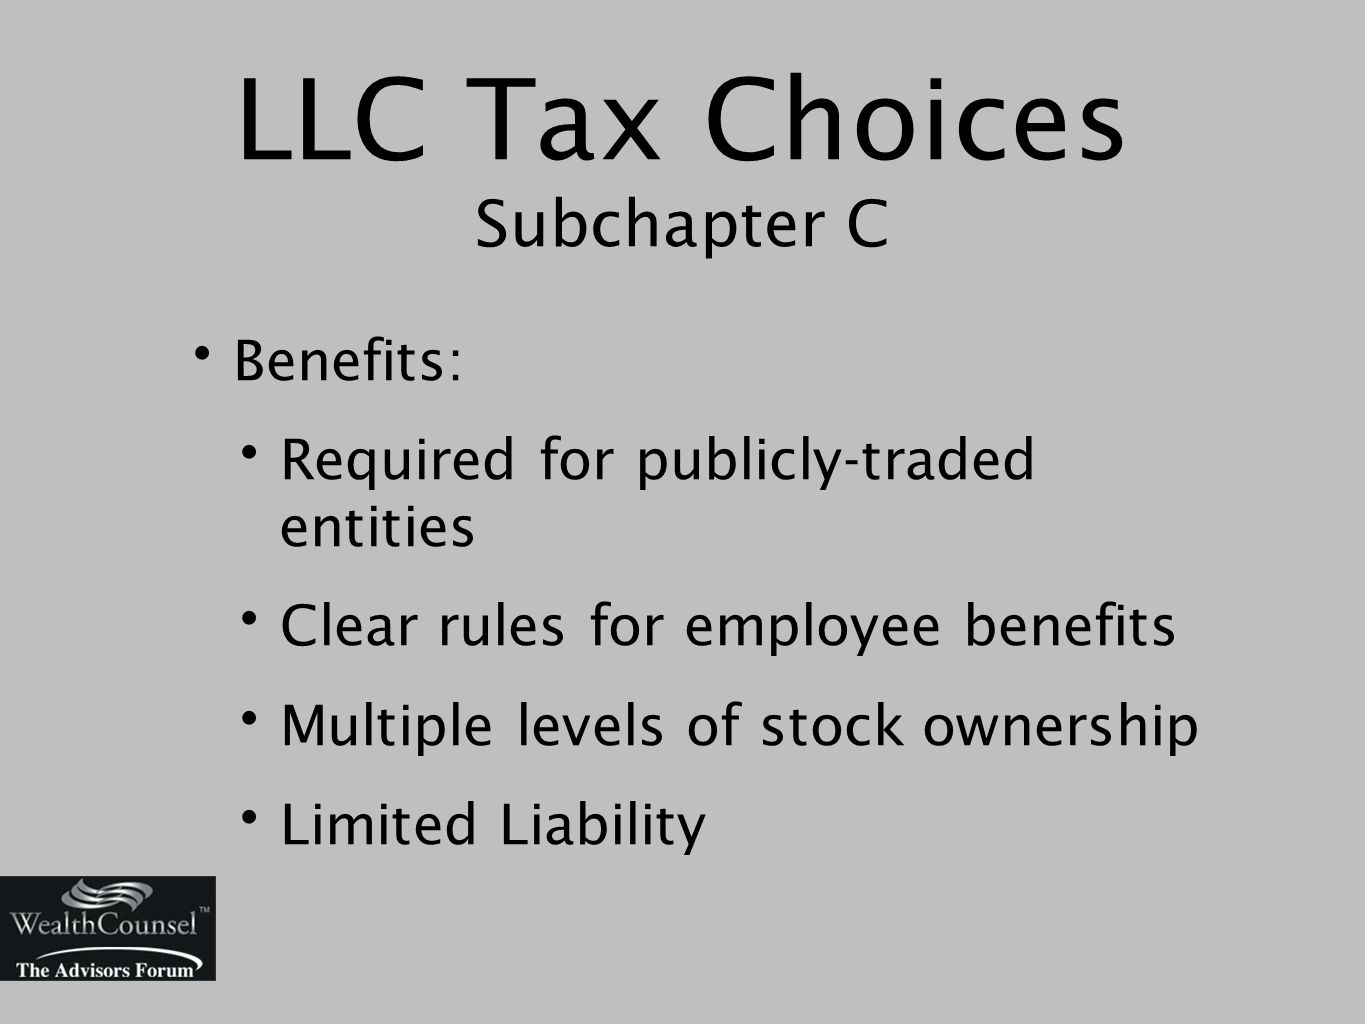 LLC Tax Choices Subchapter C Benefits: Required for publicly-traded entities Clear rules for employee benefits Multiple levels of stock ownership Limited Liability